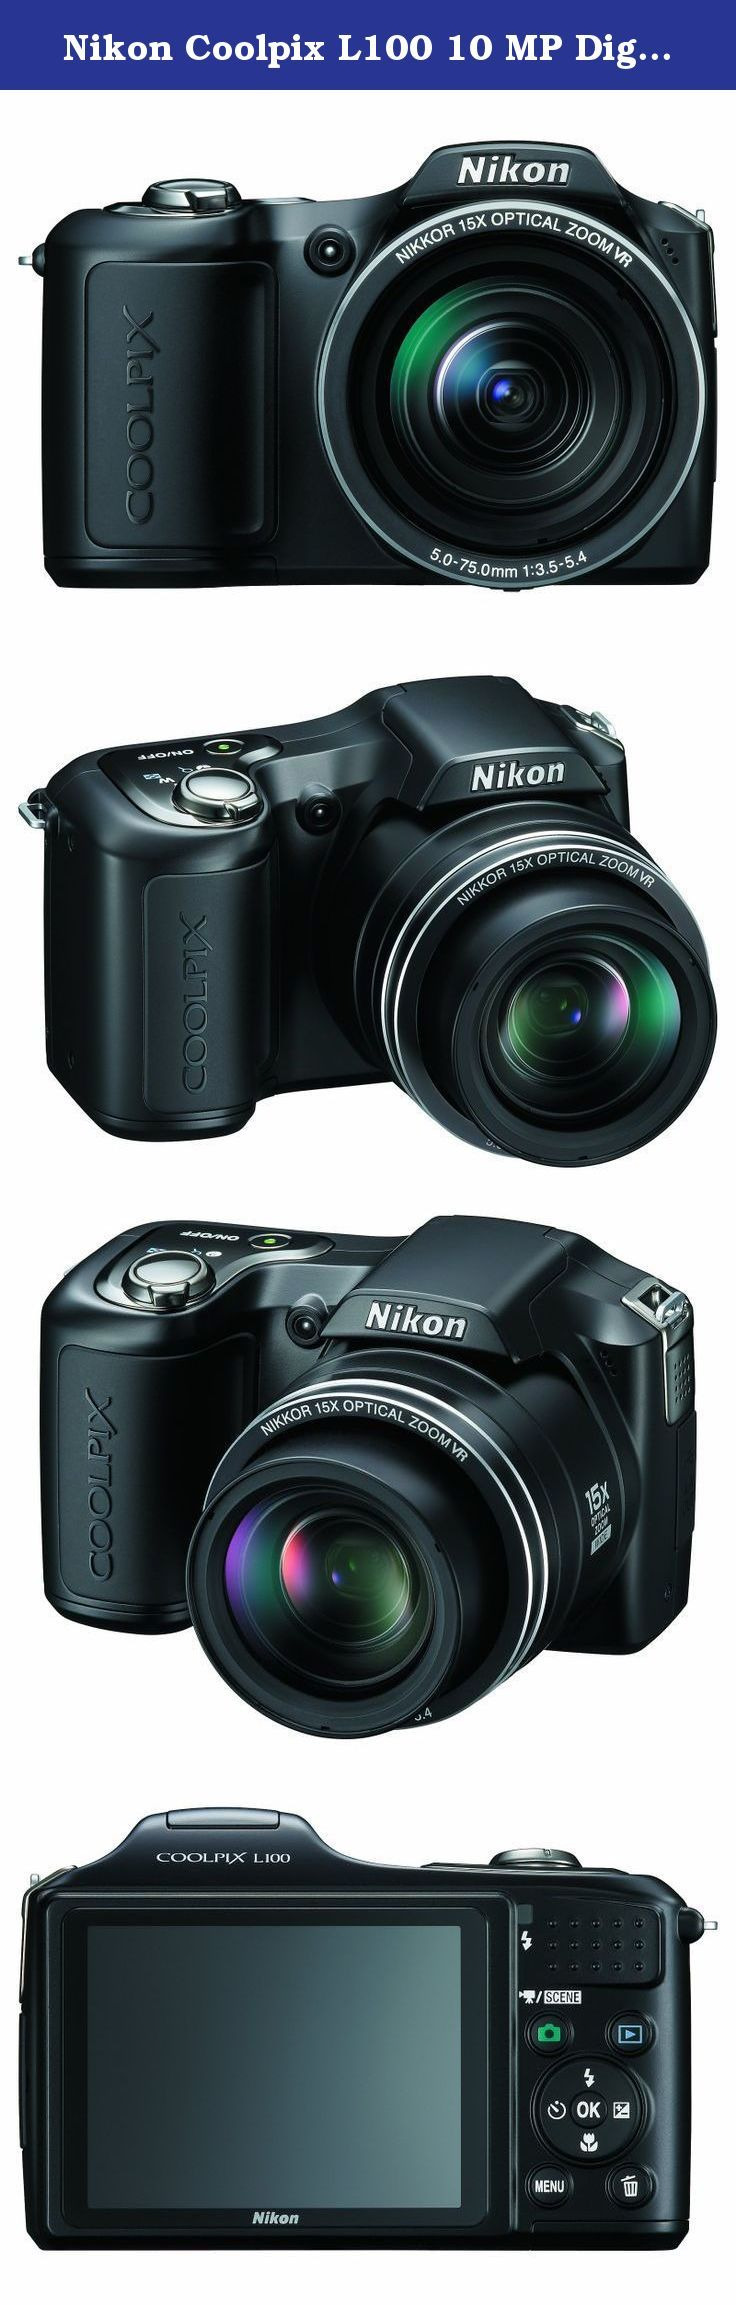 Nikon Coolpix L100 10 MP Digital Camera with 15x Optical Vibration Reduction (VR) Zoom. Expand your range with Nikon's Coolpix L100, with 10.0 effective megapixels with an incredible 15x optical Zoom-NIKKOR glass lens for stunning prints as large as 16x20 inches. The camera's bright, 3.0-inch high-resolution LCD lets you compose and share your pictures with family and friends. And with Nikon's new 4 Way VR Image Stabilization takes incredible pictures, incredibly easy. Nikon's New Smart...